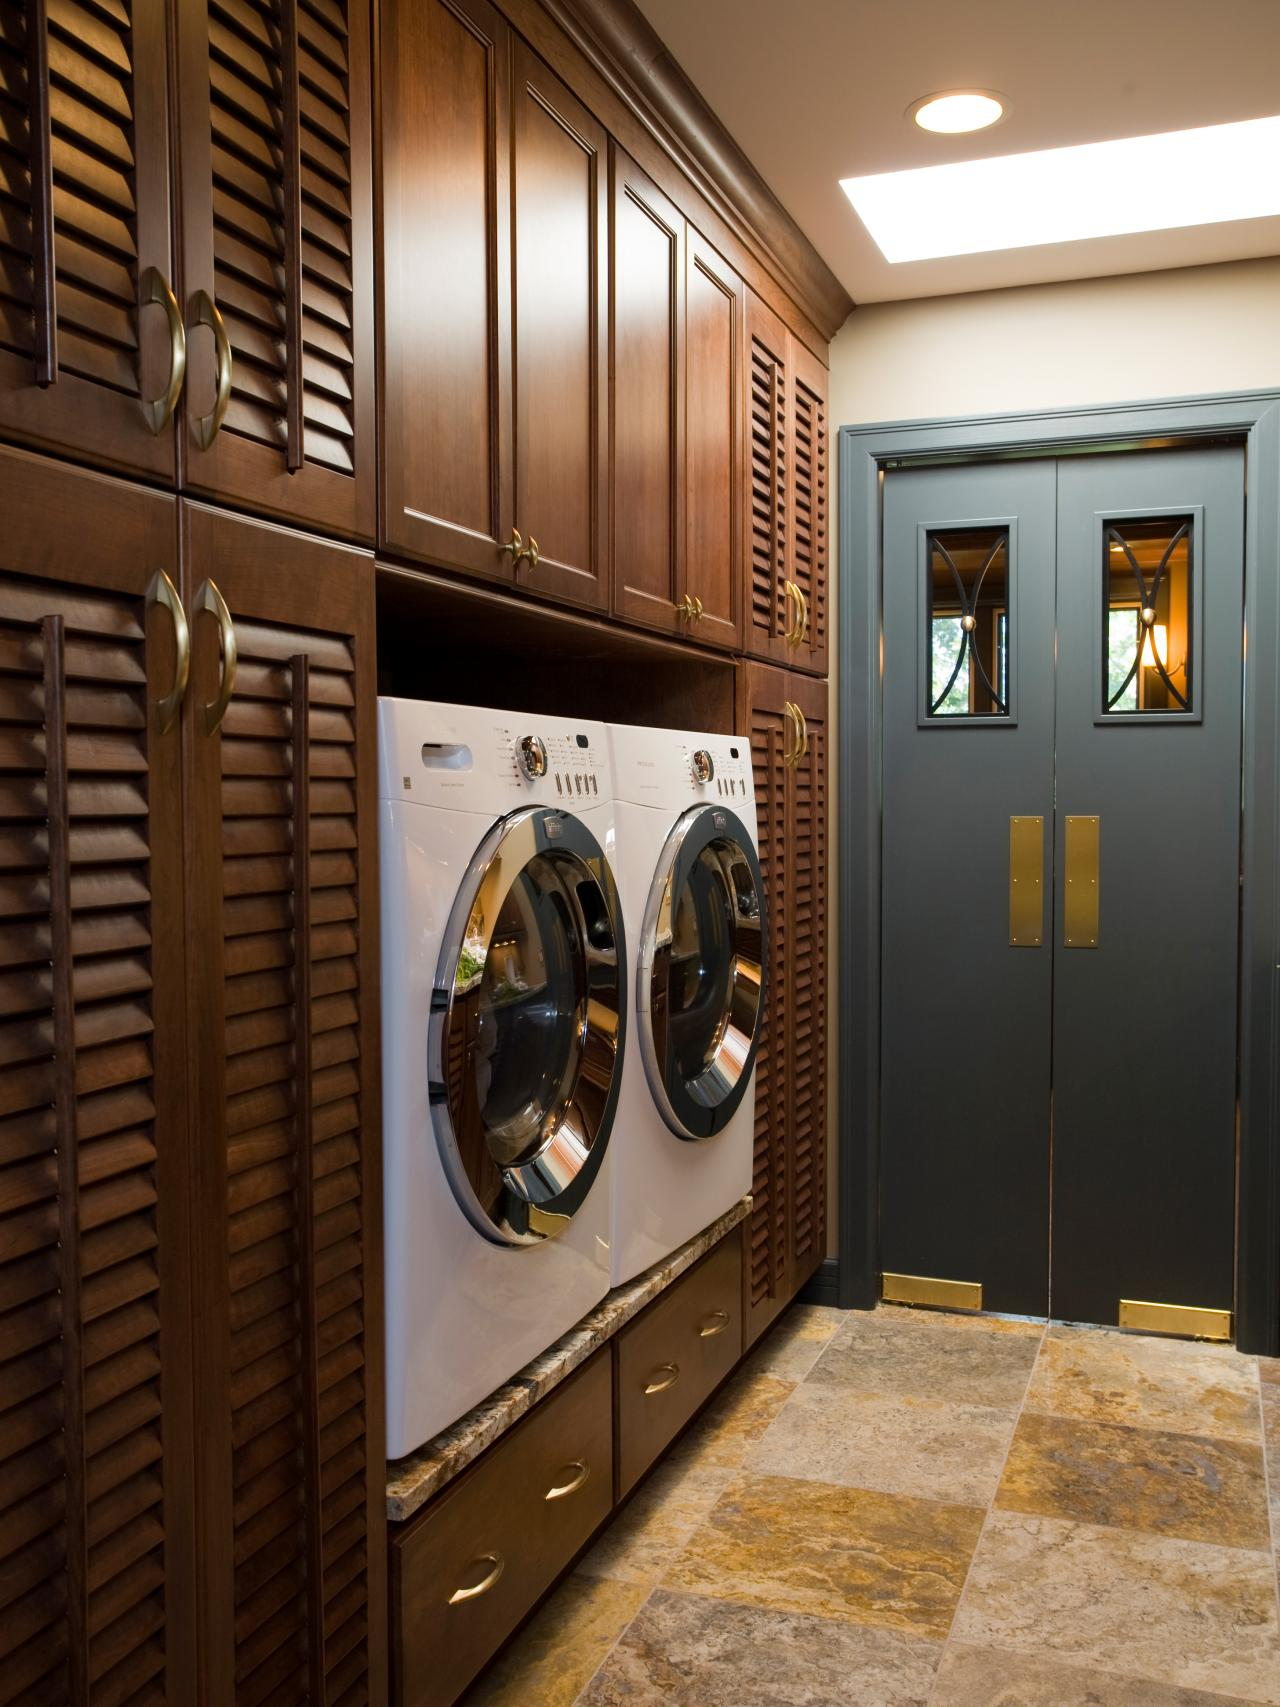 10 clever storage ideas for your tiny laundry room hgtv - Laundry room design ideas ...